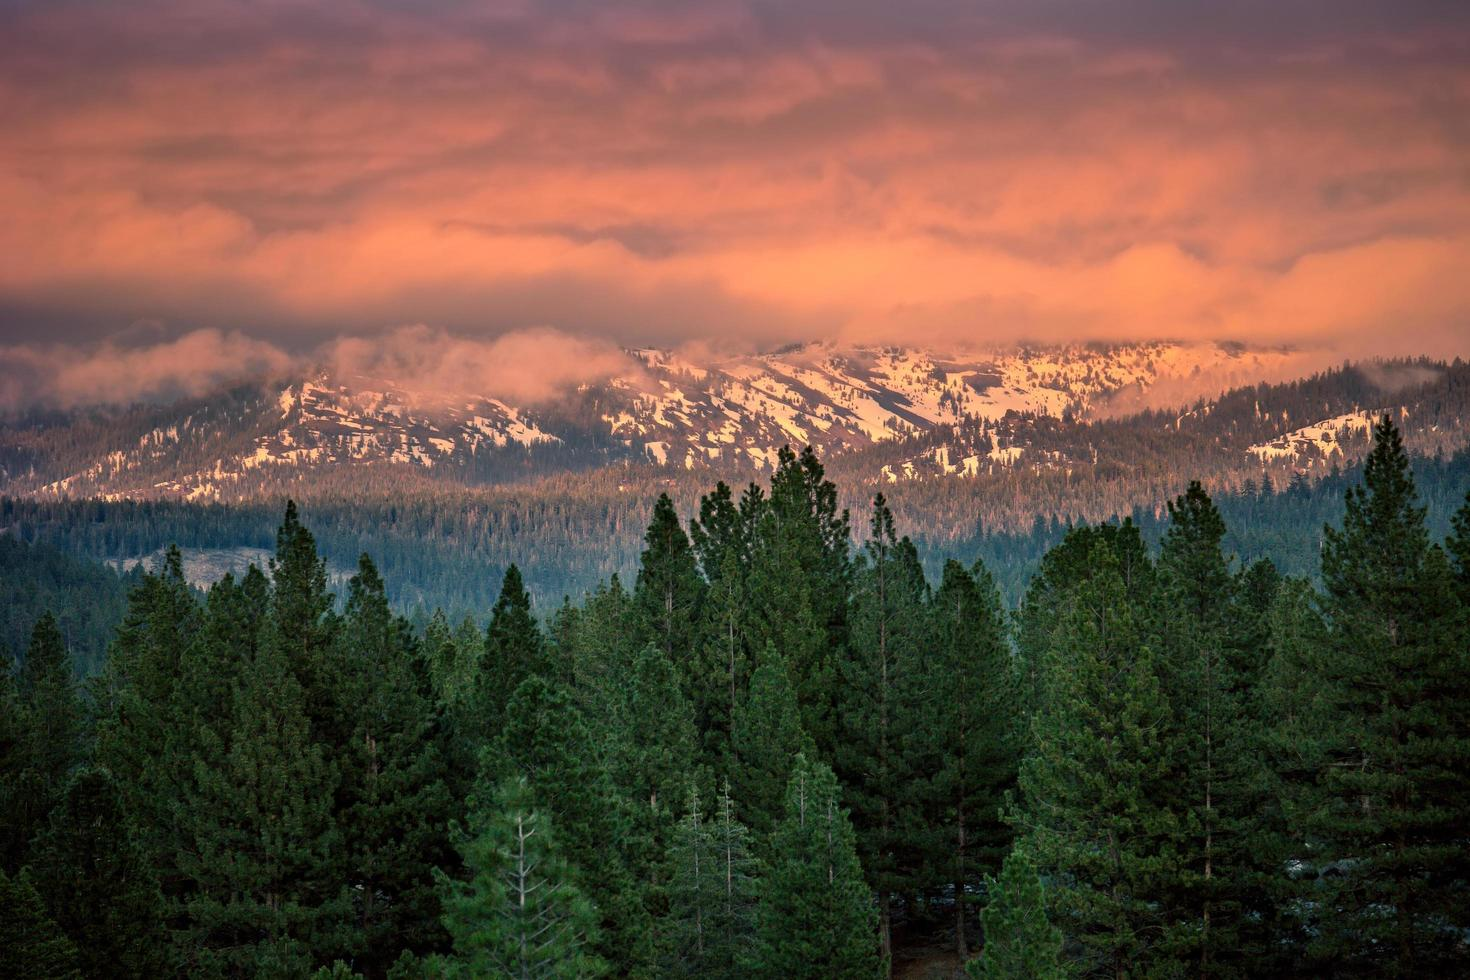 Trees in front of mountains at sunset photo